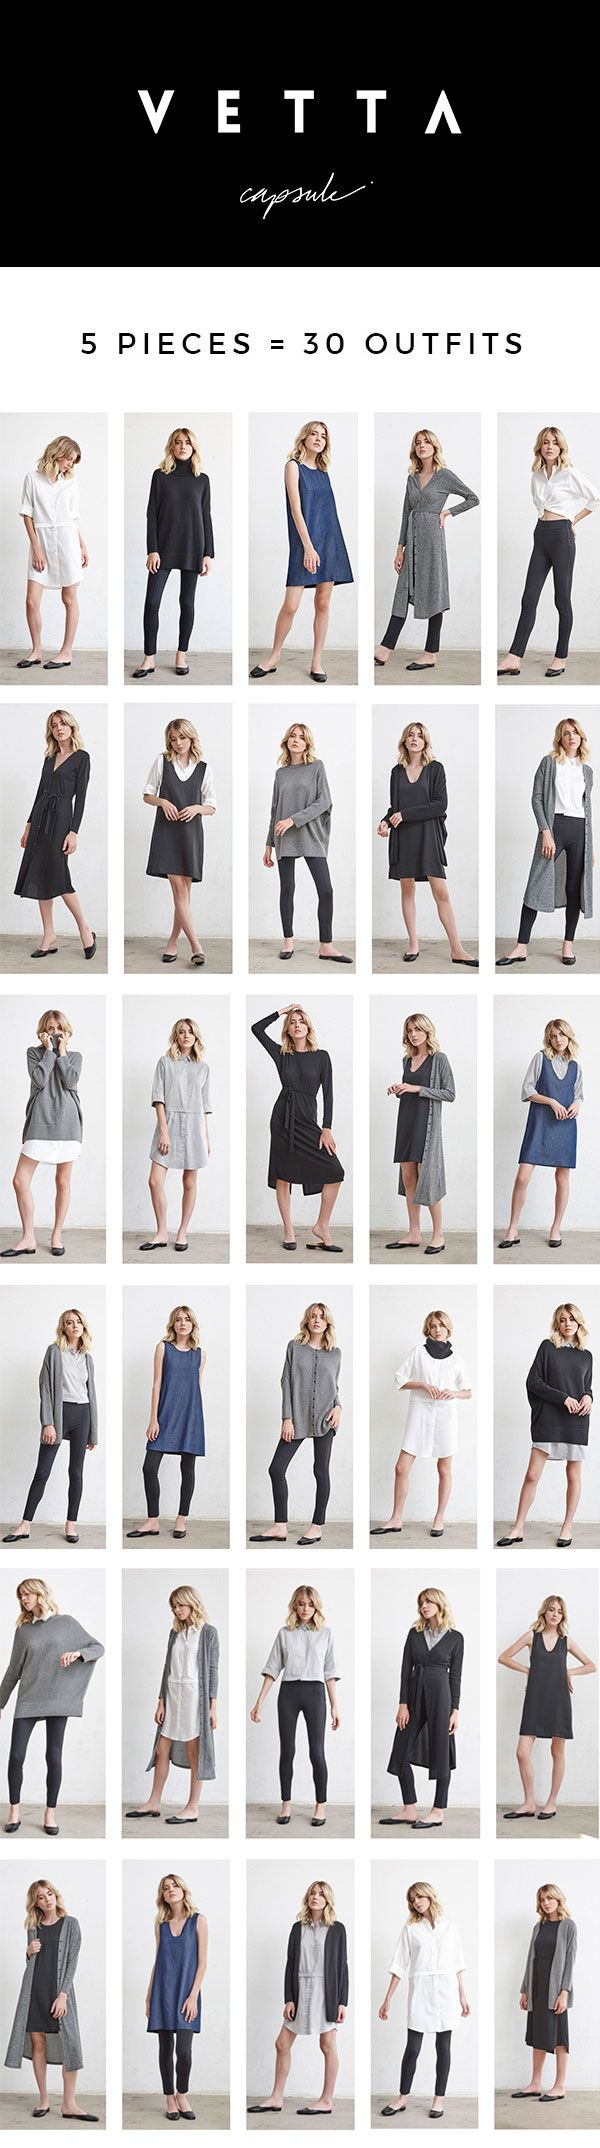 5 pieces = 30 outfits | made in USA from sustainable fabrics | www.vettacapsule.com #capsule #sustainablefashion #capsulewardrobe #madeinusa #oversizedsweater #dustercardigan #pontepants #shirtdress #jumper #reversible #convertible